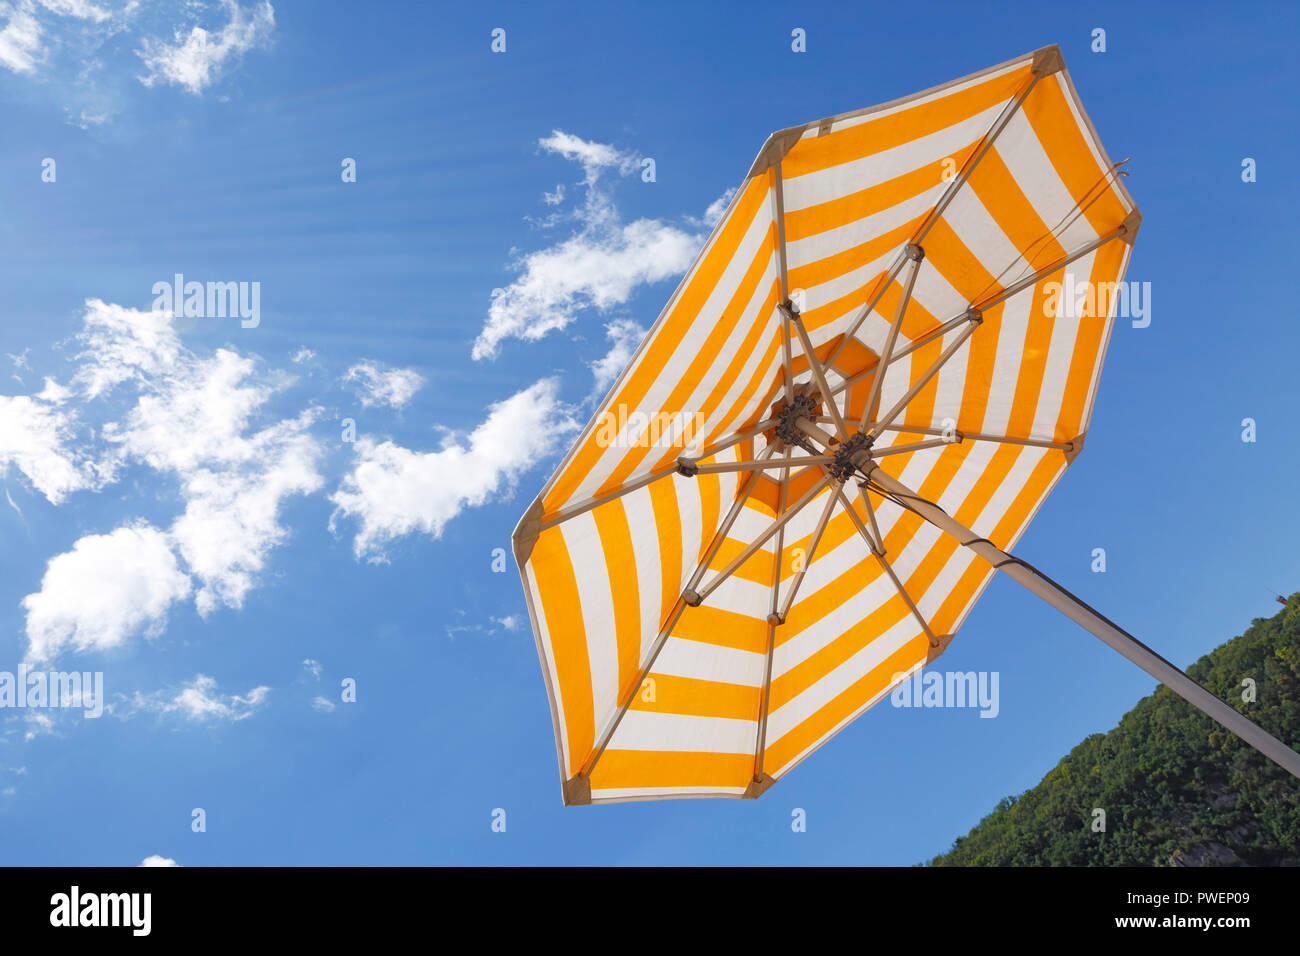 one parasol on a cruise ship against the blue sky, yellow and white, cumulus clouds, holiday, freetime, recreation, relaxation, sunlight, sunshine, shelter from sun, unpeopled, travel, cruise, tourism - Stock Image